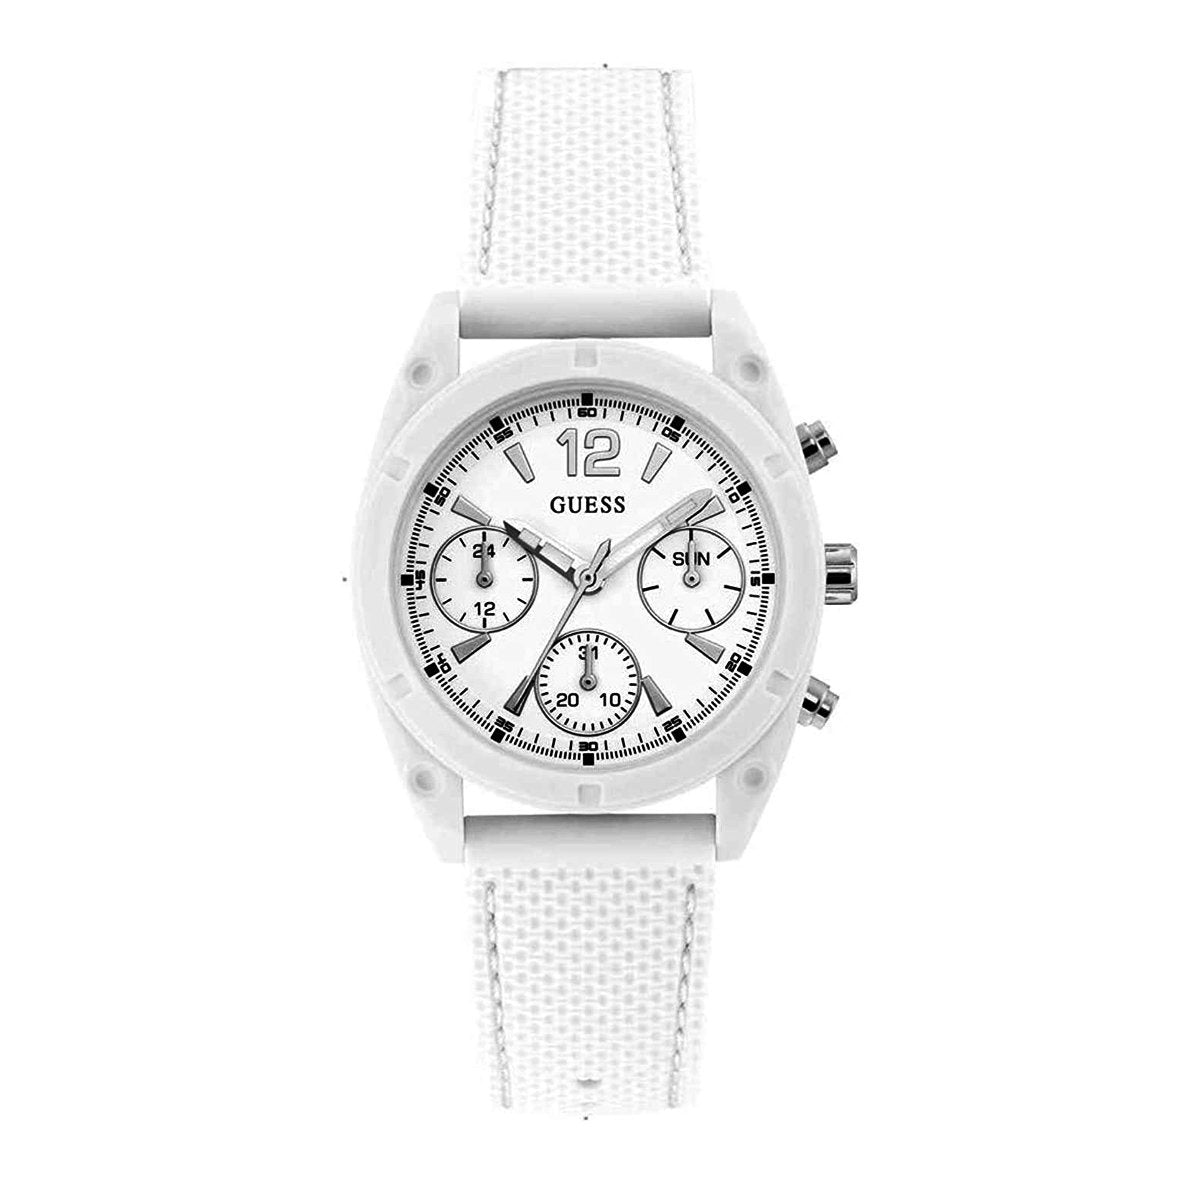 Guess Dart White - Watches & Crystals